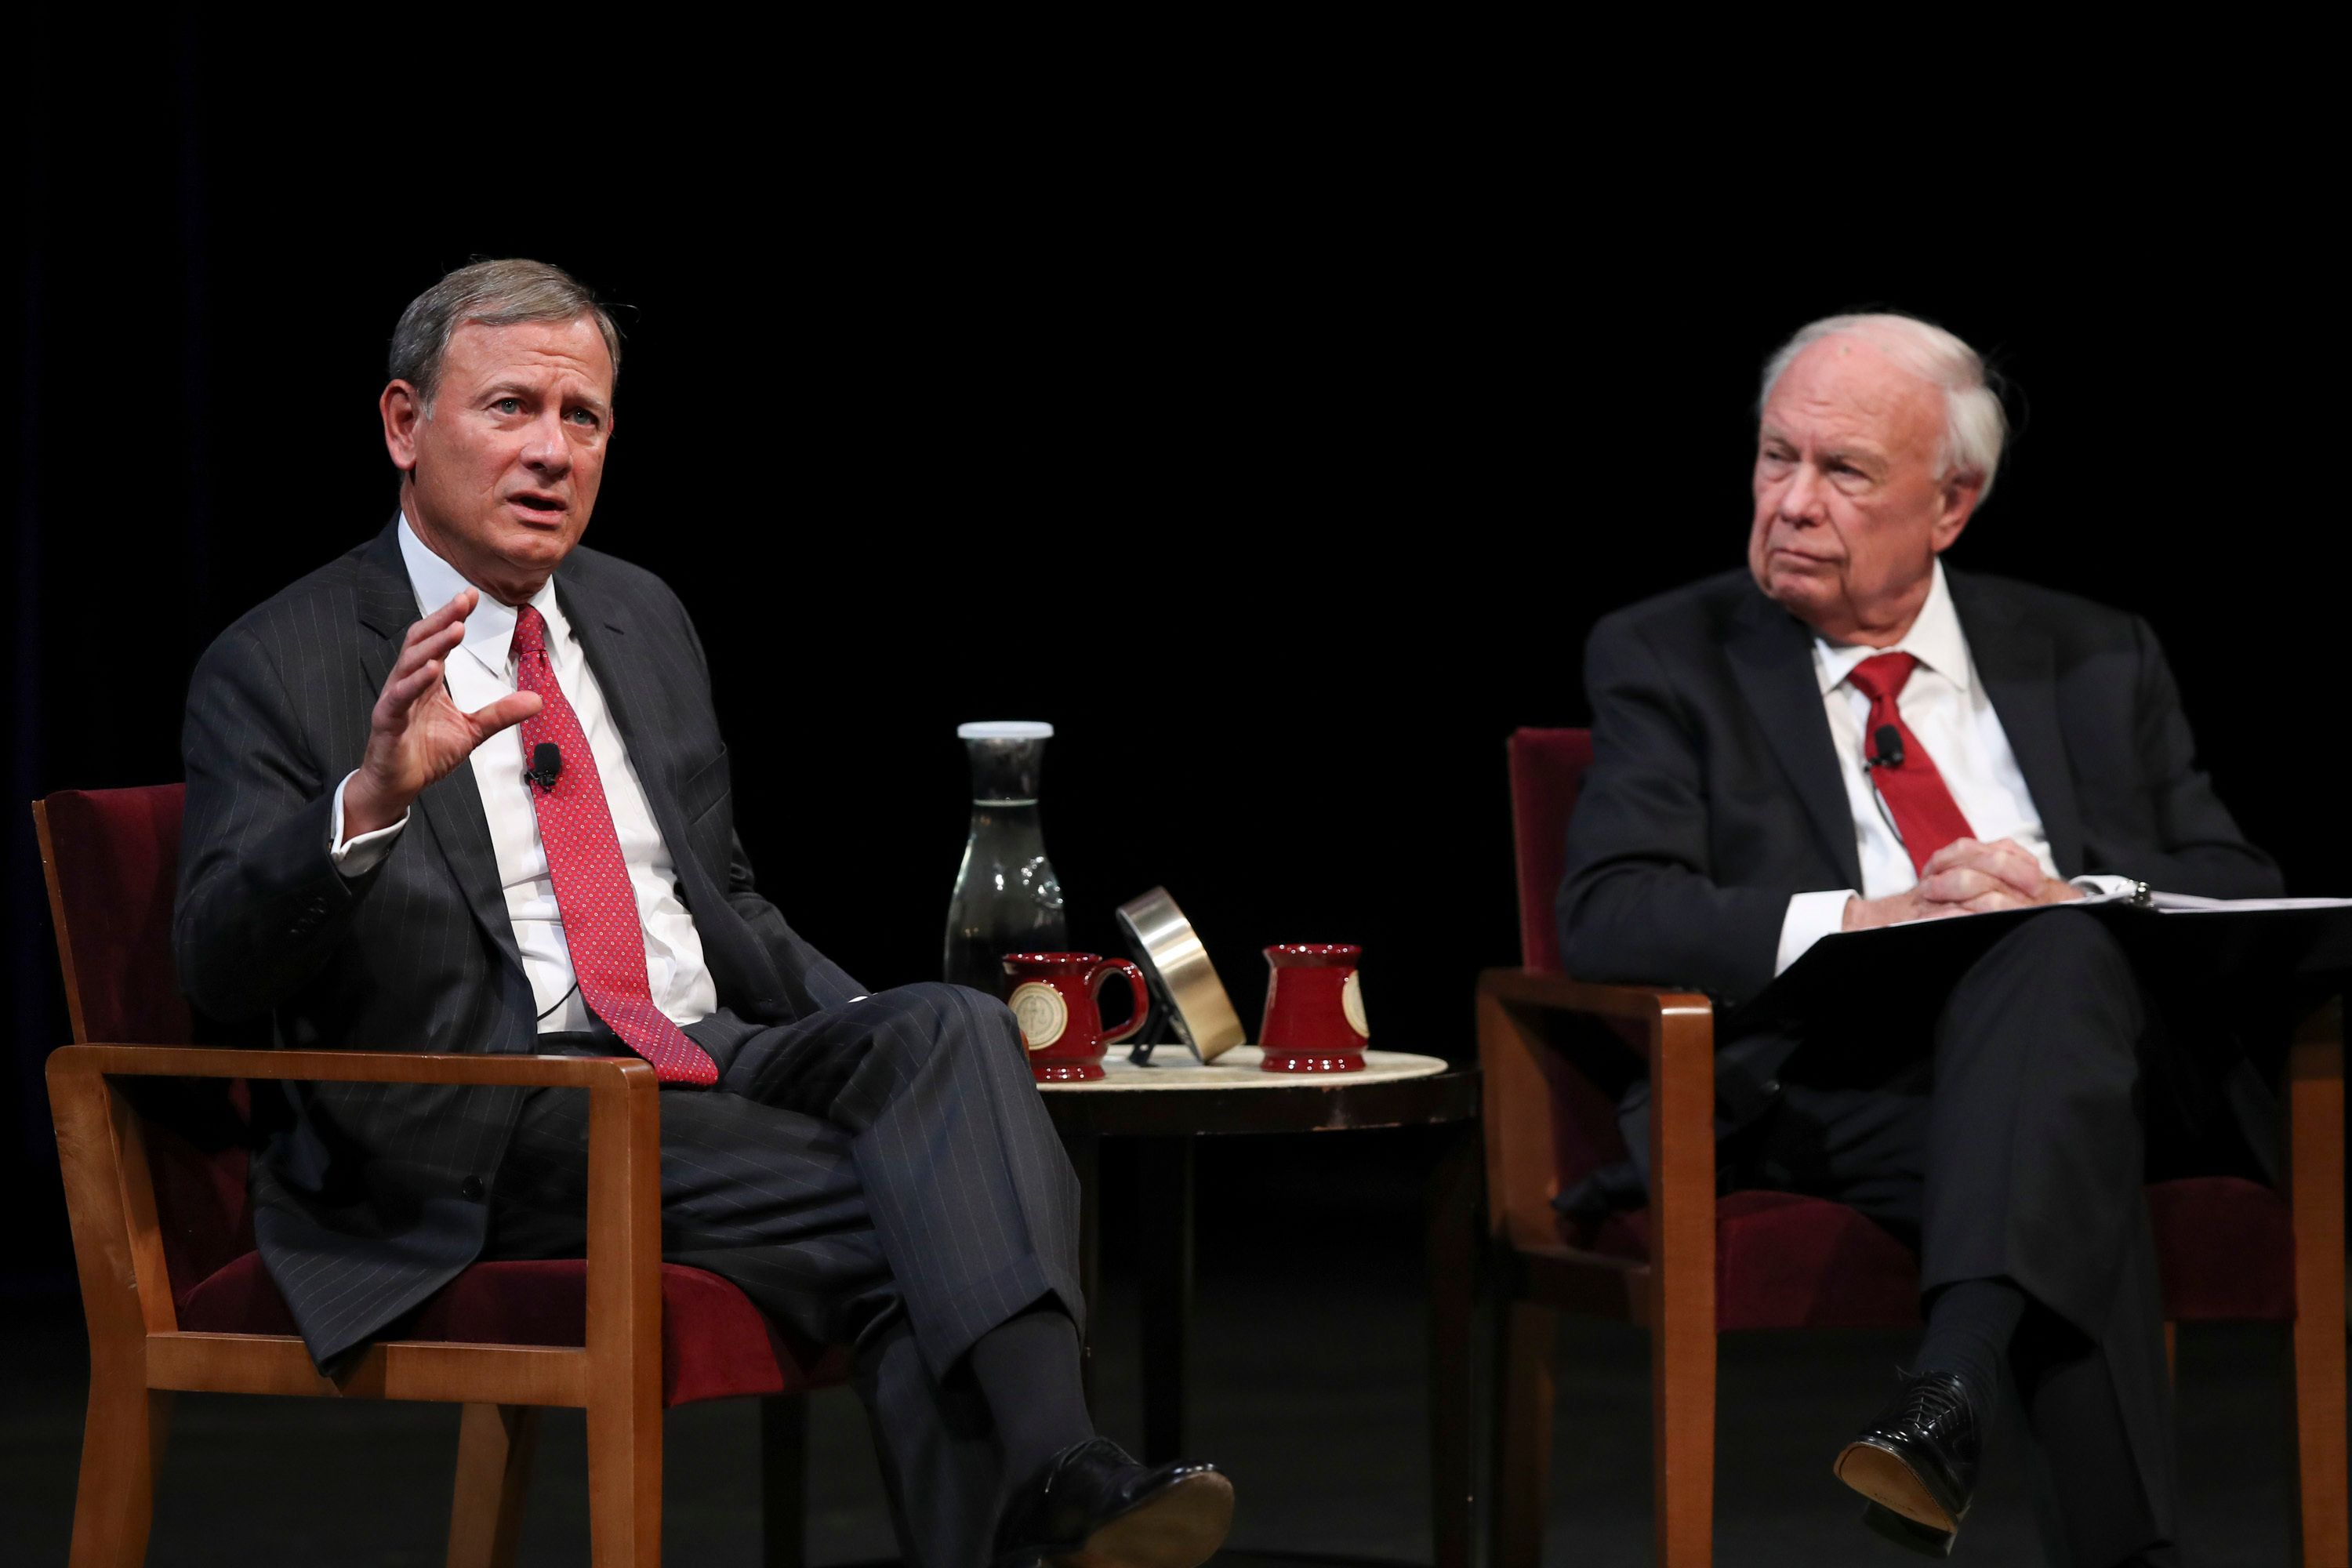 U.S. Supreme Court Chief Justice John Roberts, Jr., left, answers a student's question following his conversation with Professor Robert A. Stein Tuesday, Oct. 16, 2018 at Northrop Auditorium in Minneapolis. (Jeff Wheeler/Star Tribune via AP)